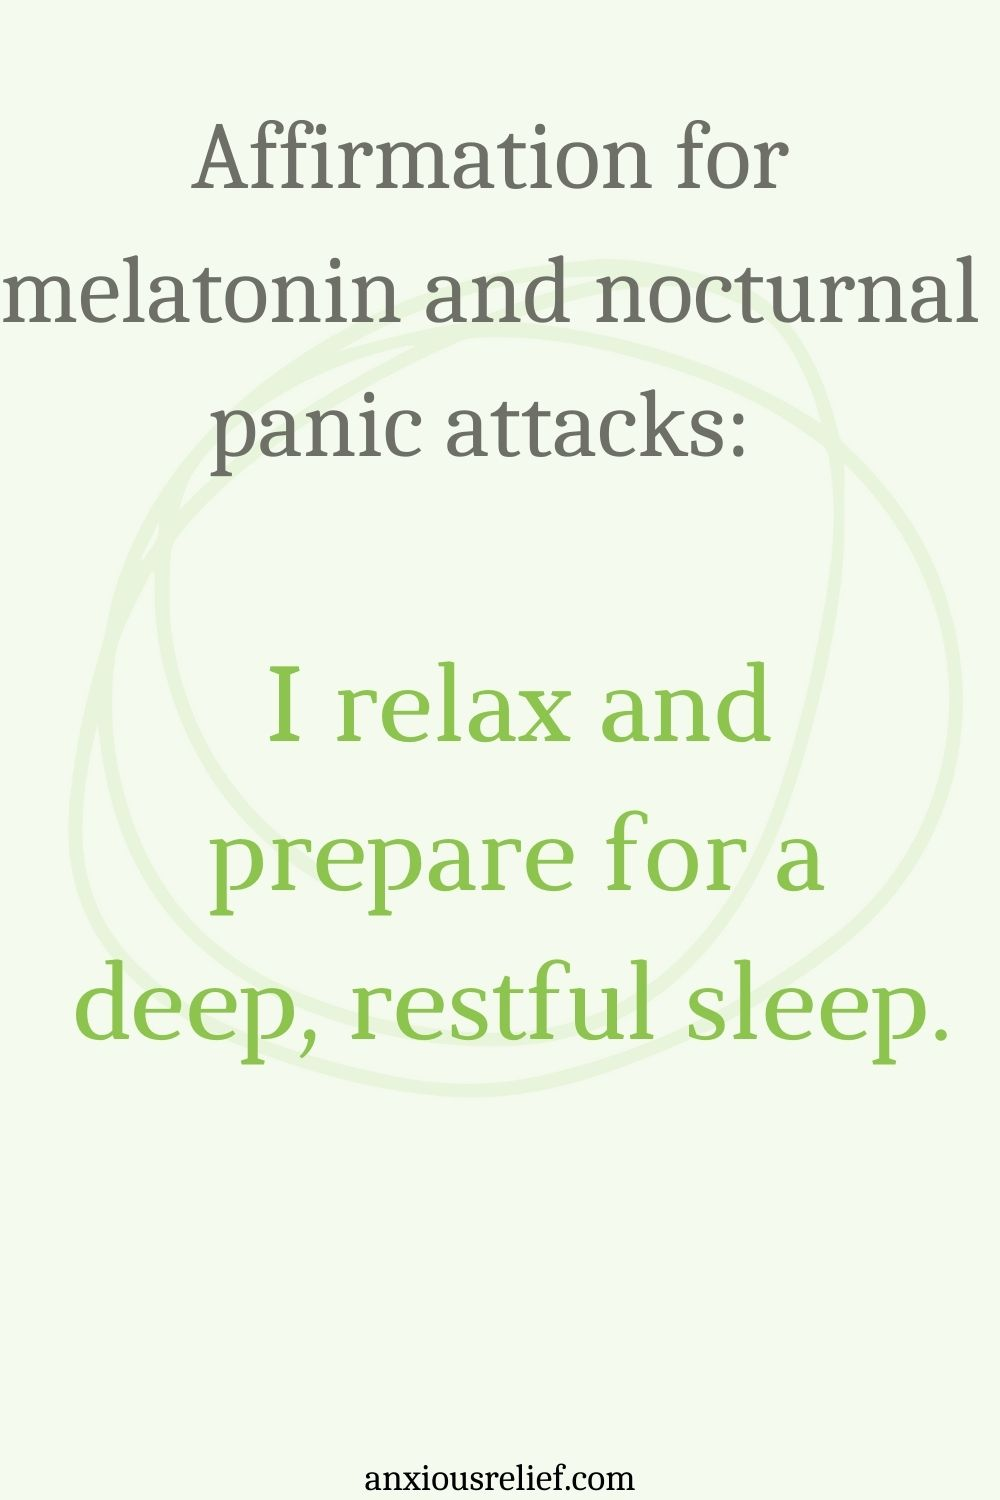 Affirmation for melatonin and nocturnal panic attacks: I relax and prepare for a deep, restful sleep.